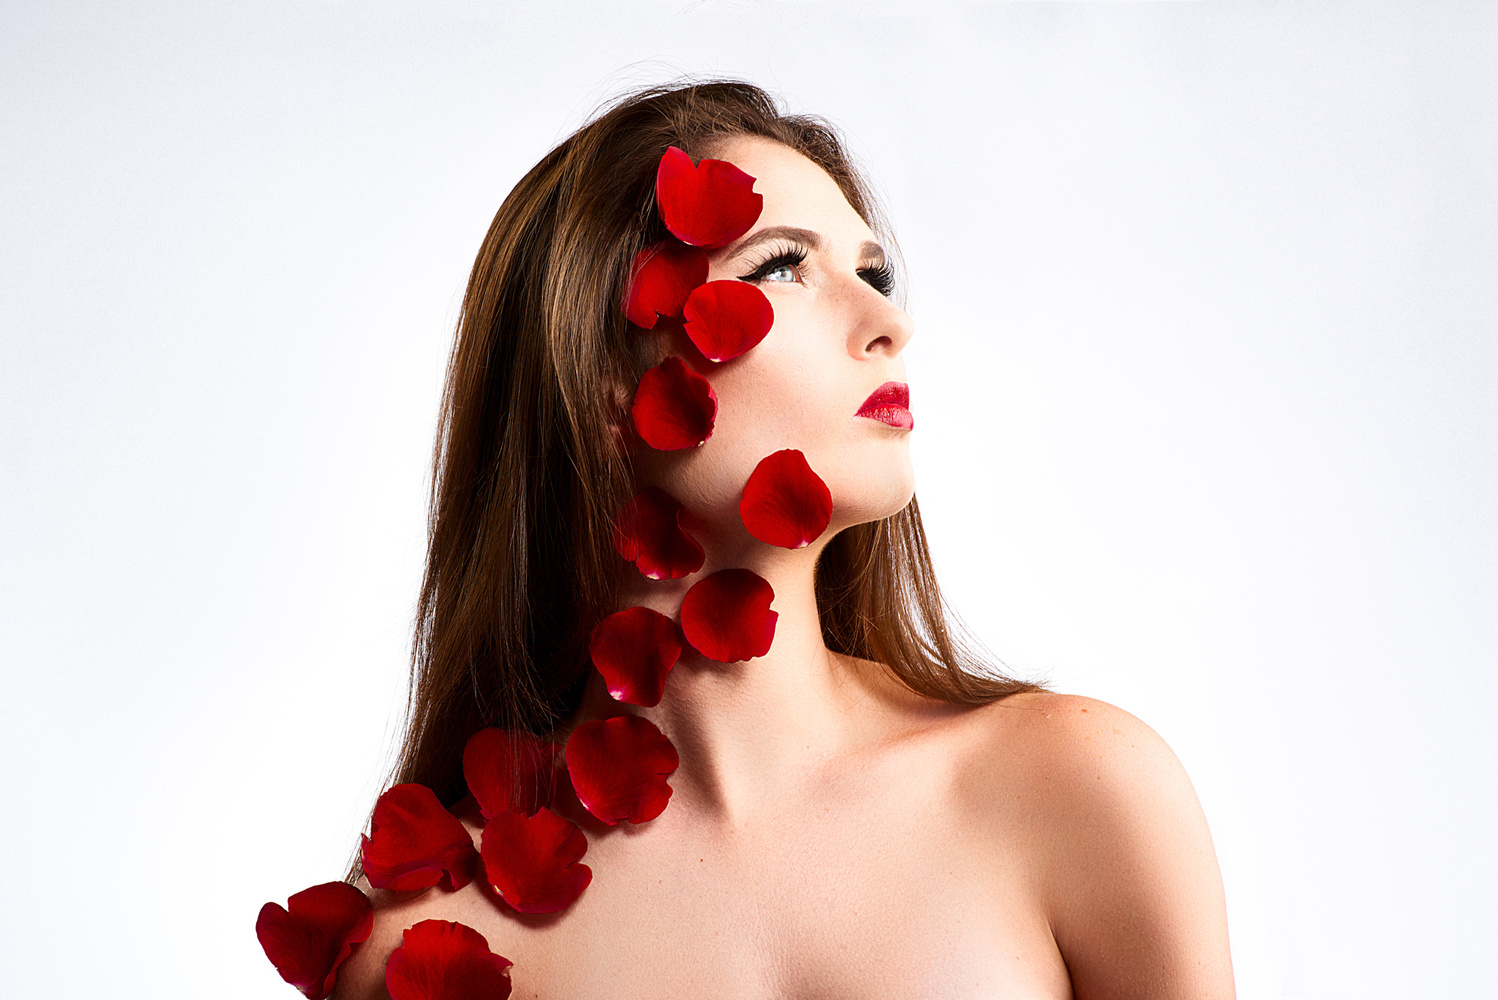 Red petals by Olivier Lannes